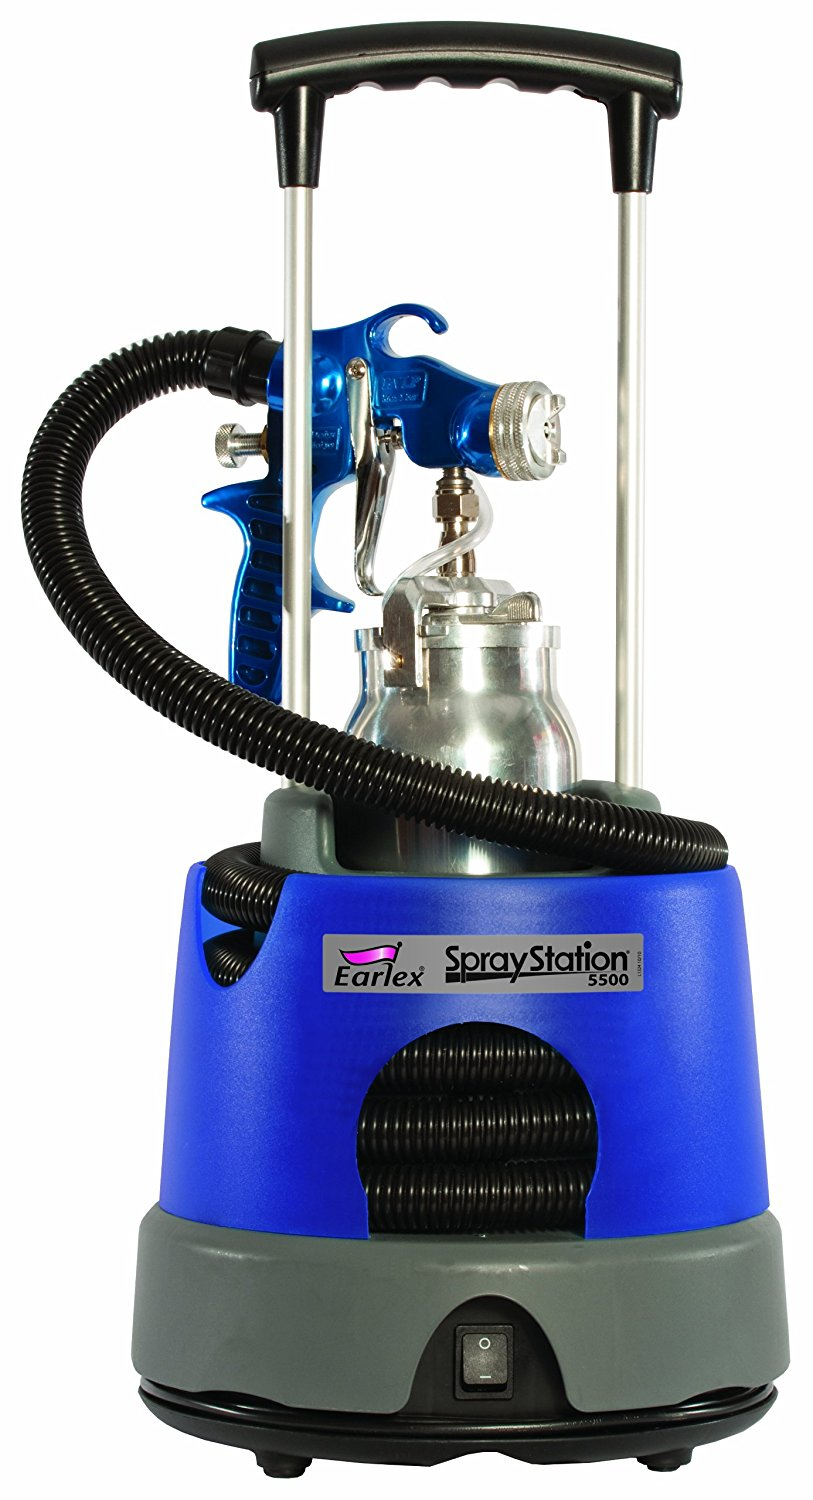 Best paint sprayer for kitchen cabinets of 2018 sprayer for Airless paint sprayer for kitchen cabinets